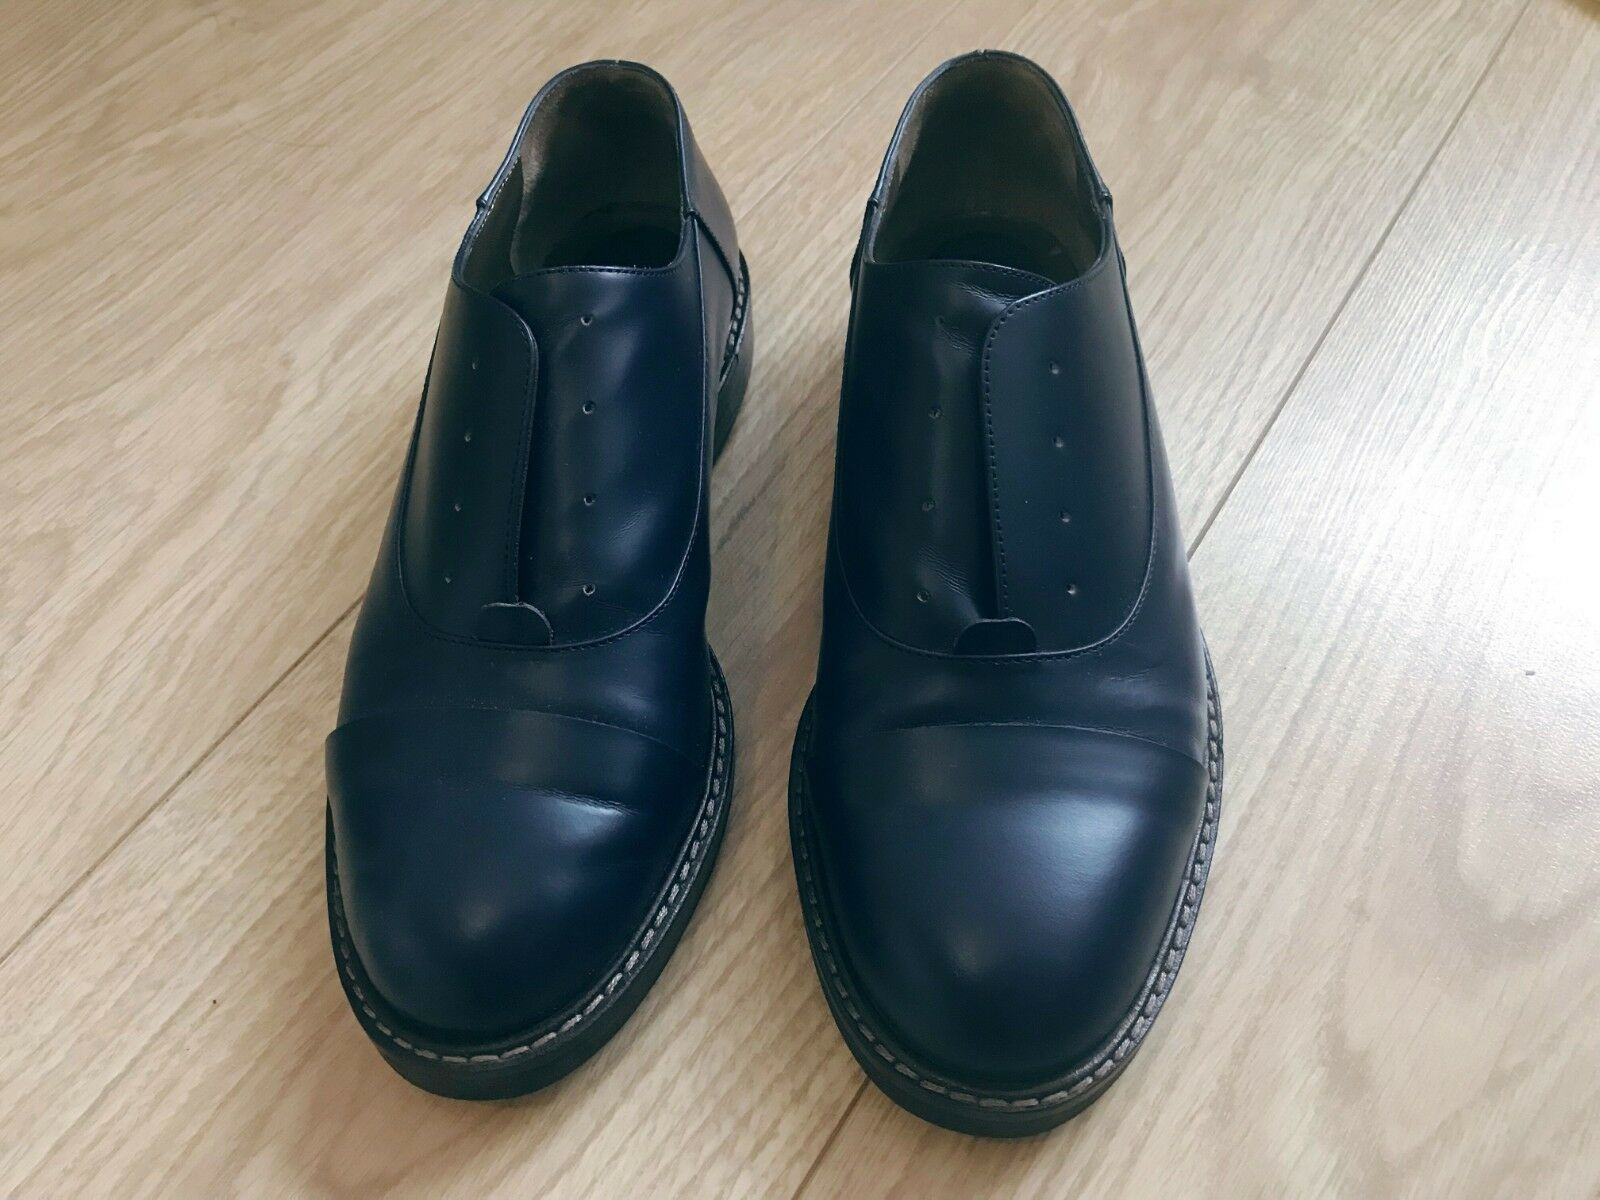 Marni shoes navy bluee womens leather